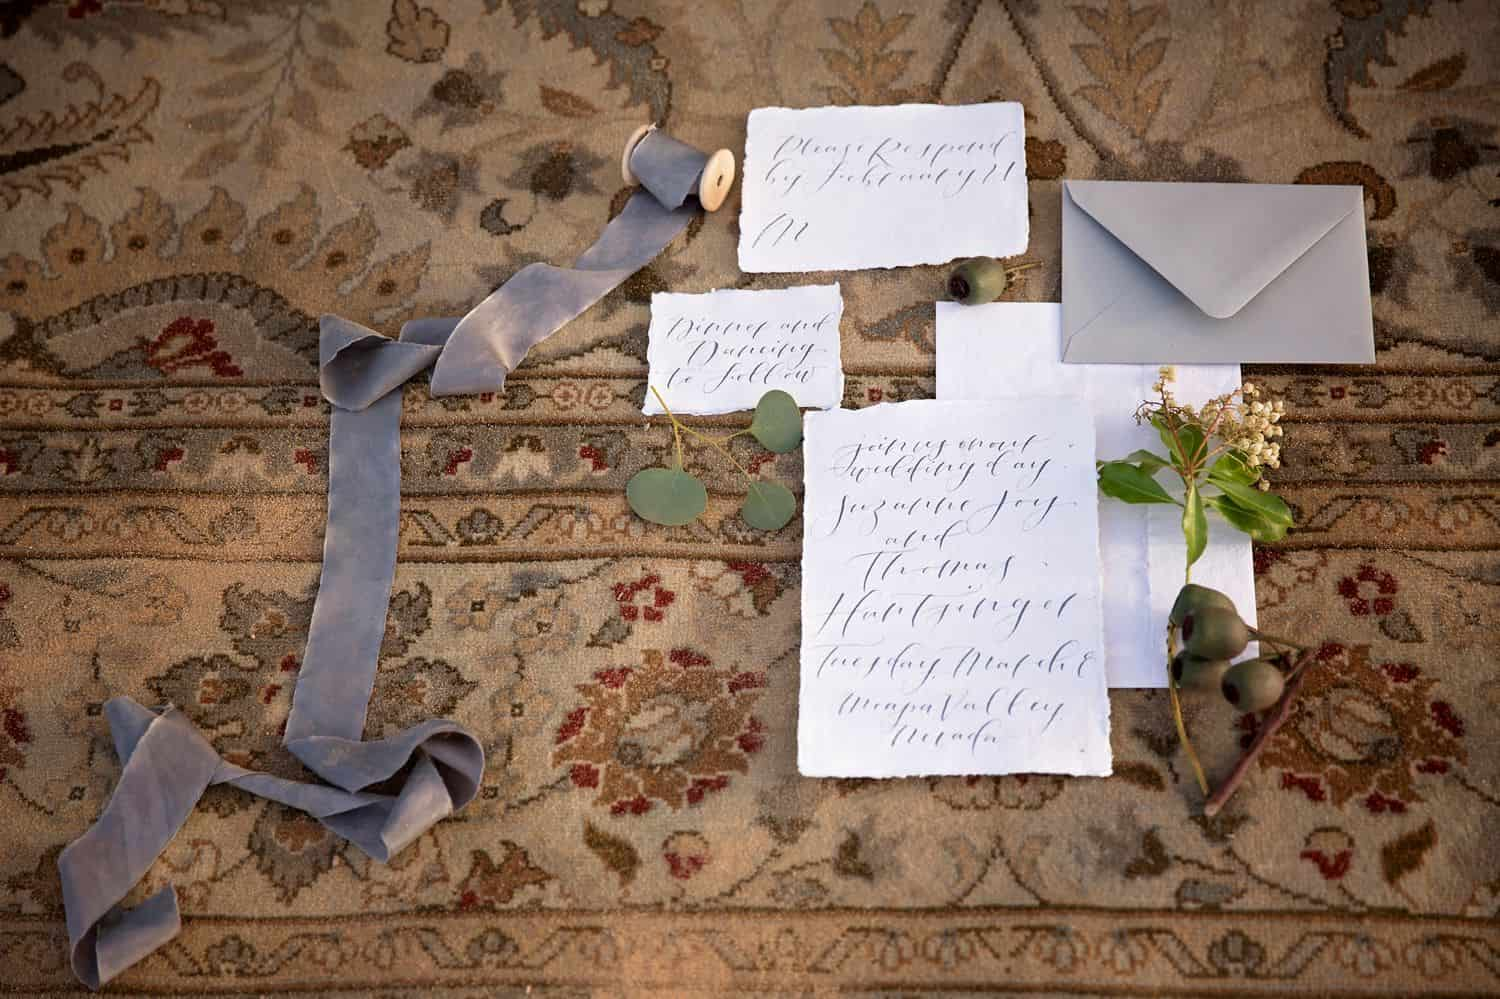 13 Things Every Photographer Should Know After 3 Years: Craft A Beautiful Flatlay